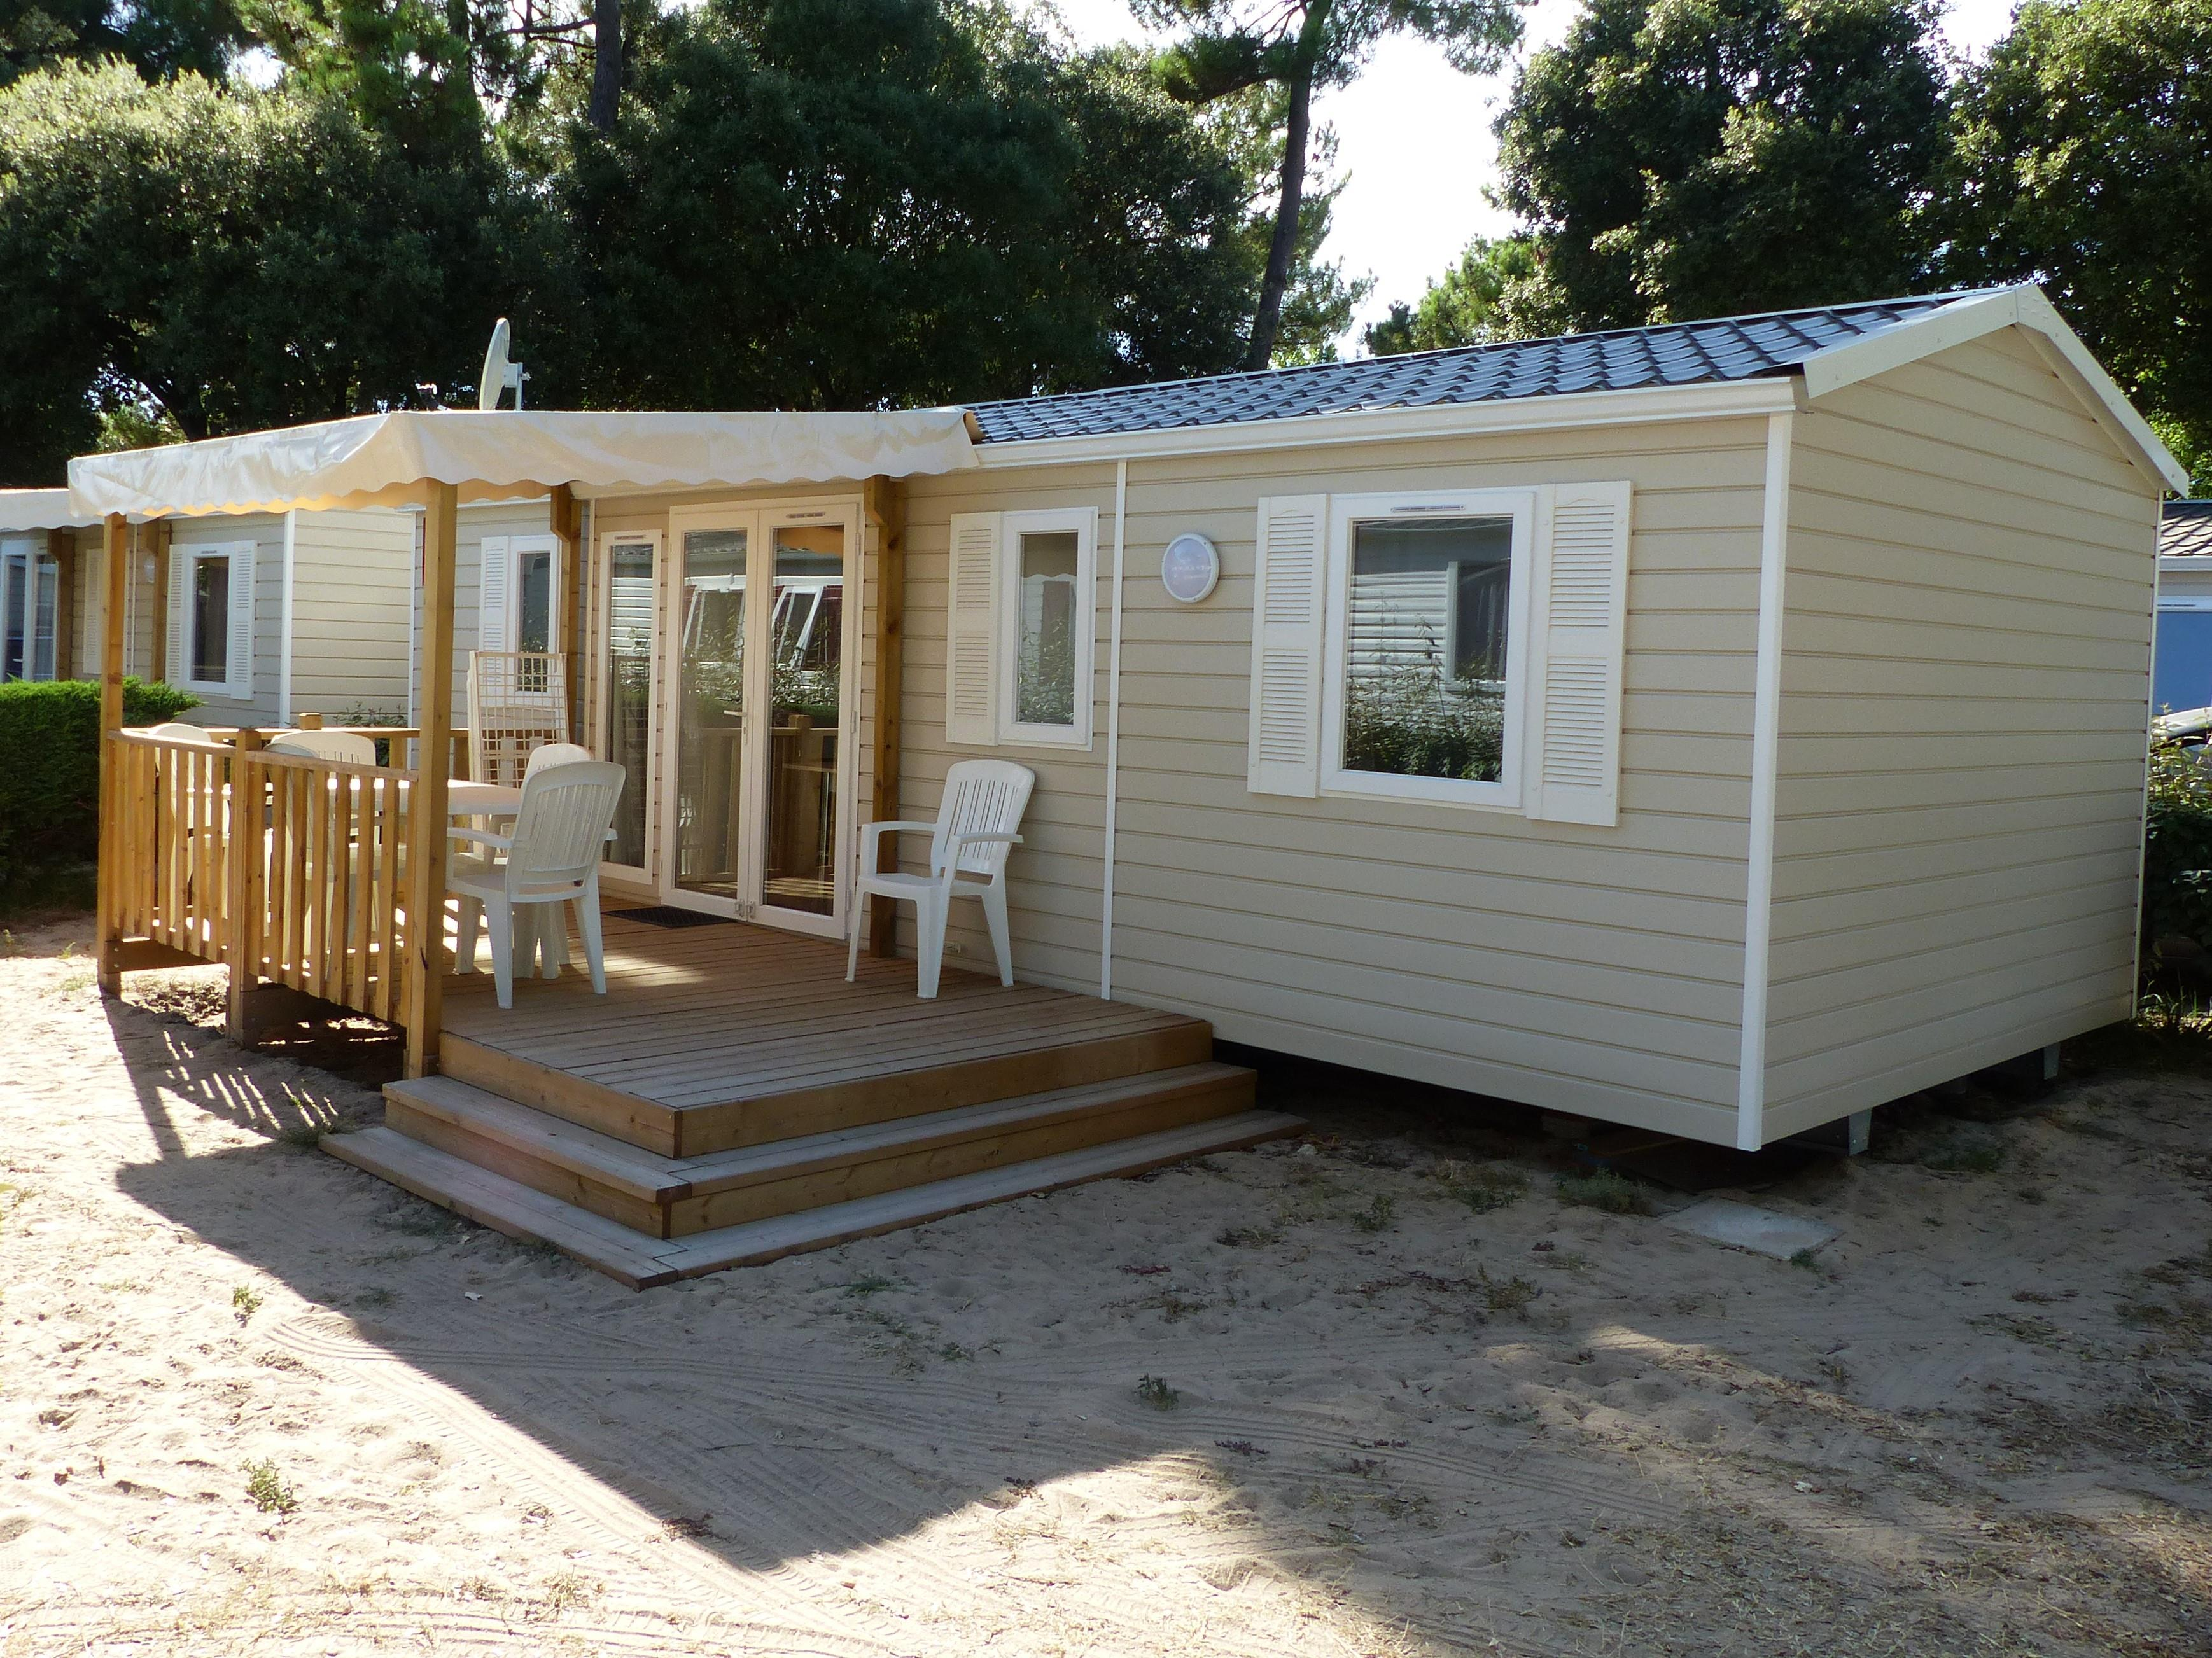 Mobile-Home Palmier 3 Bedrooms + Half-Covered Terrace